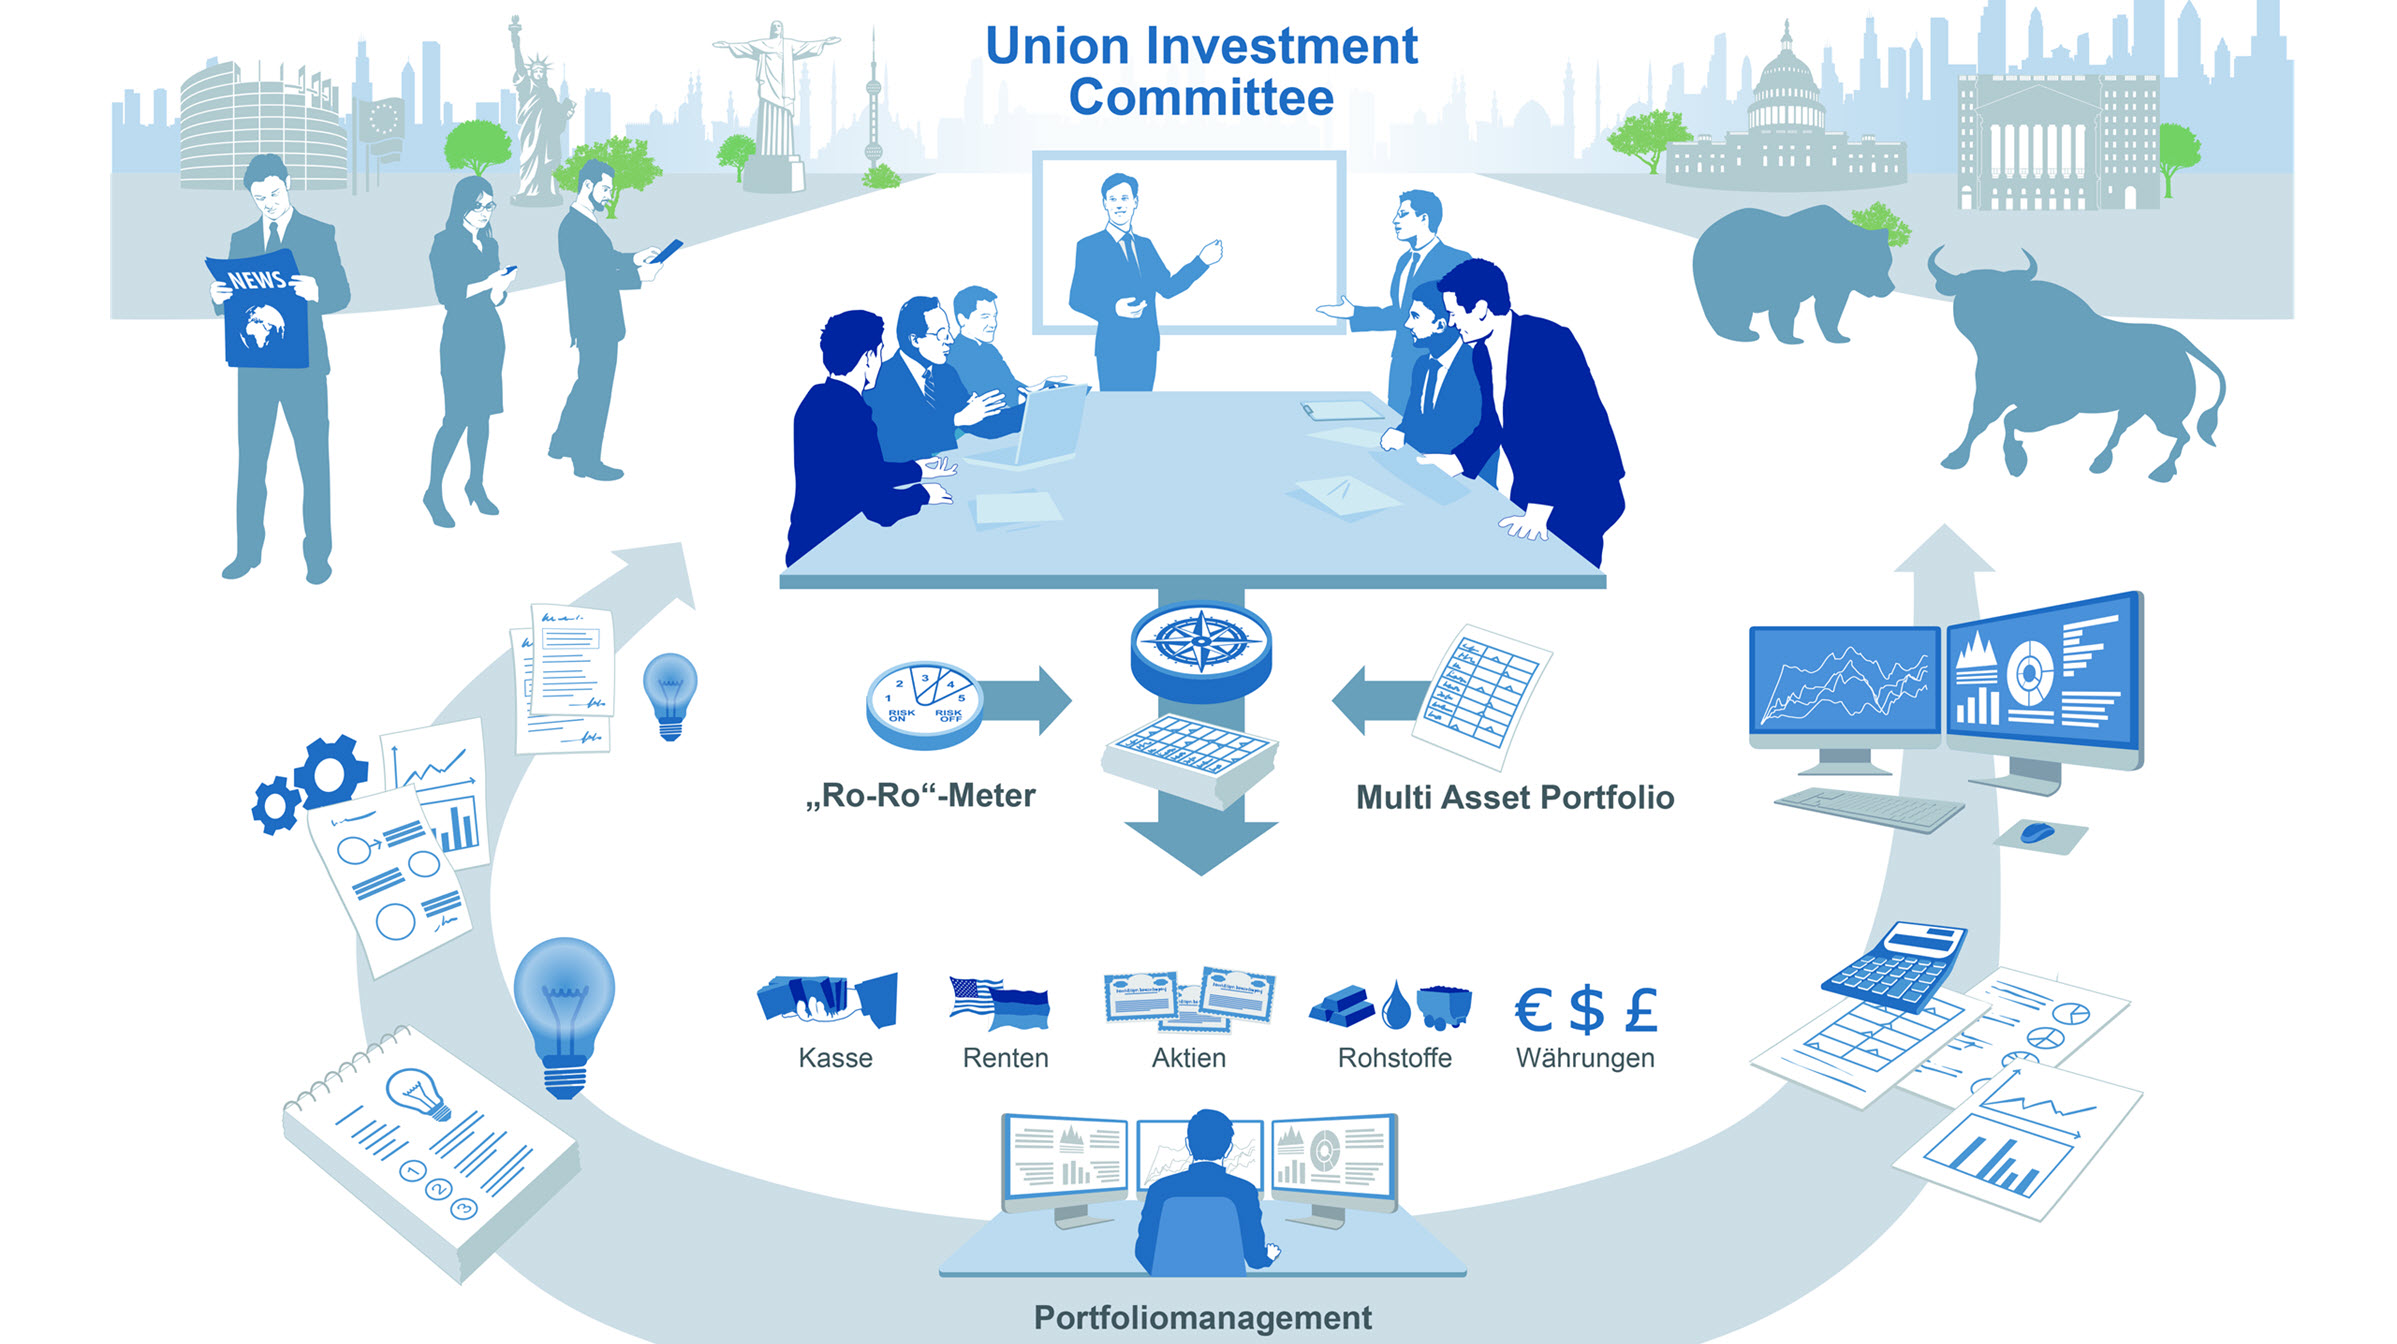 Arbeitsweise des Union Investment Committee